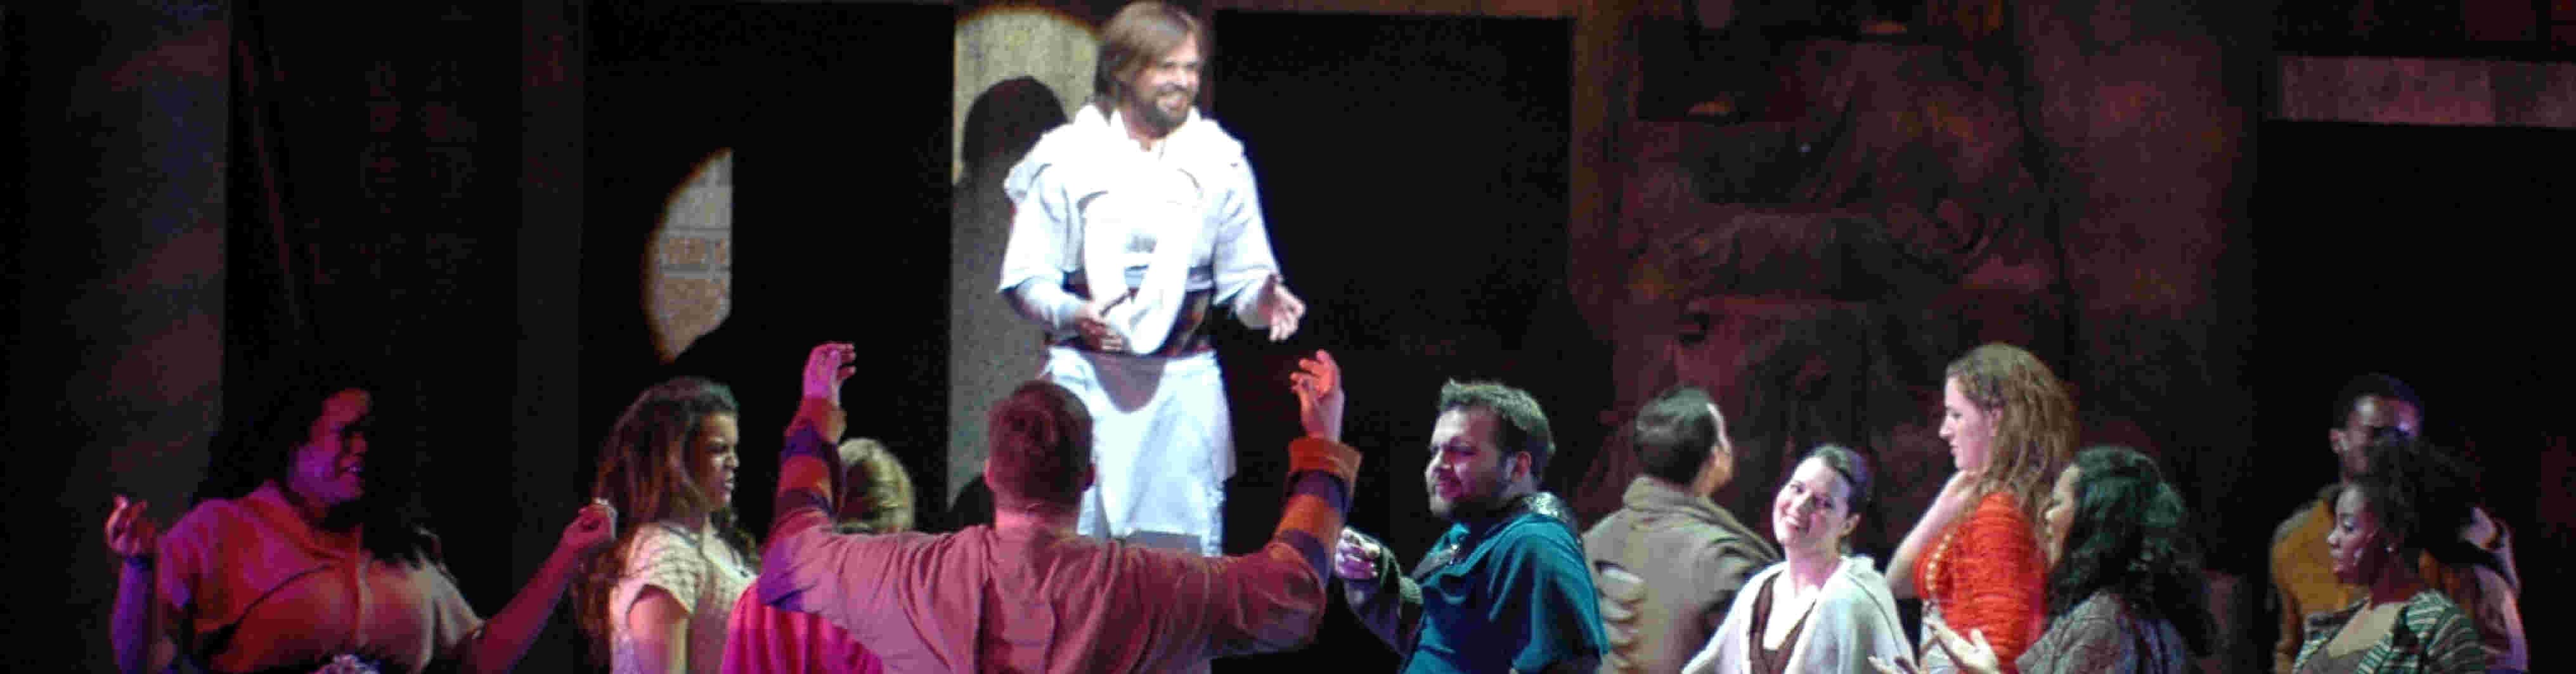 Jesus Christ Superstar - 2014